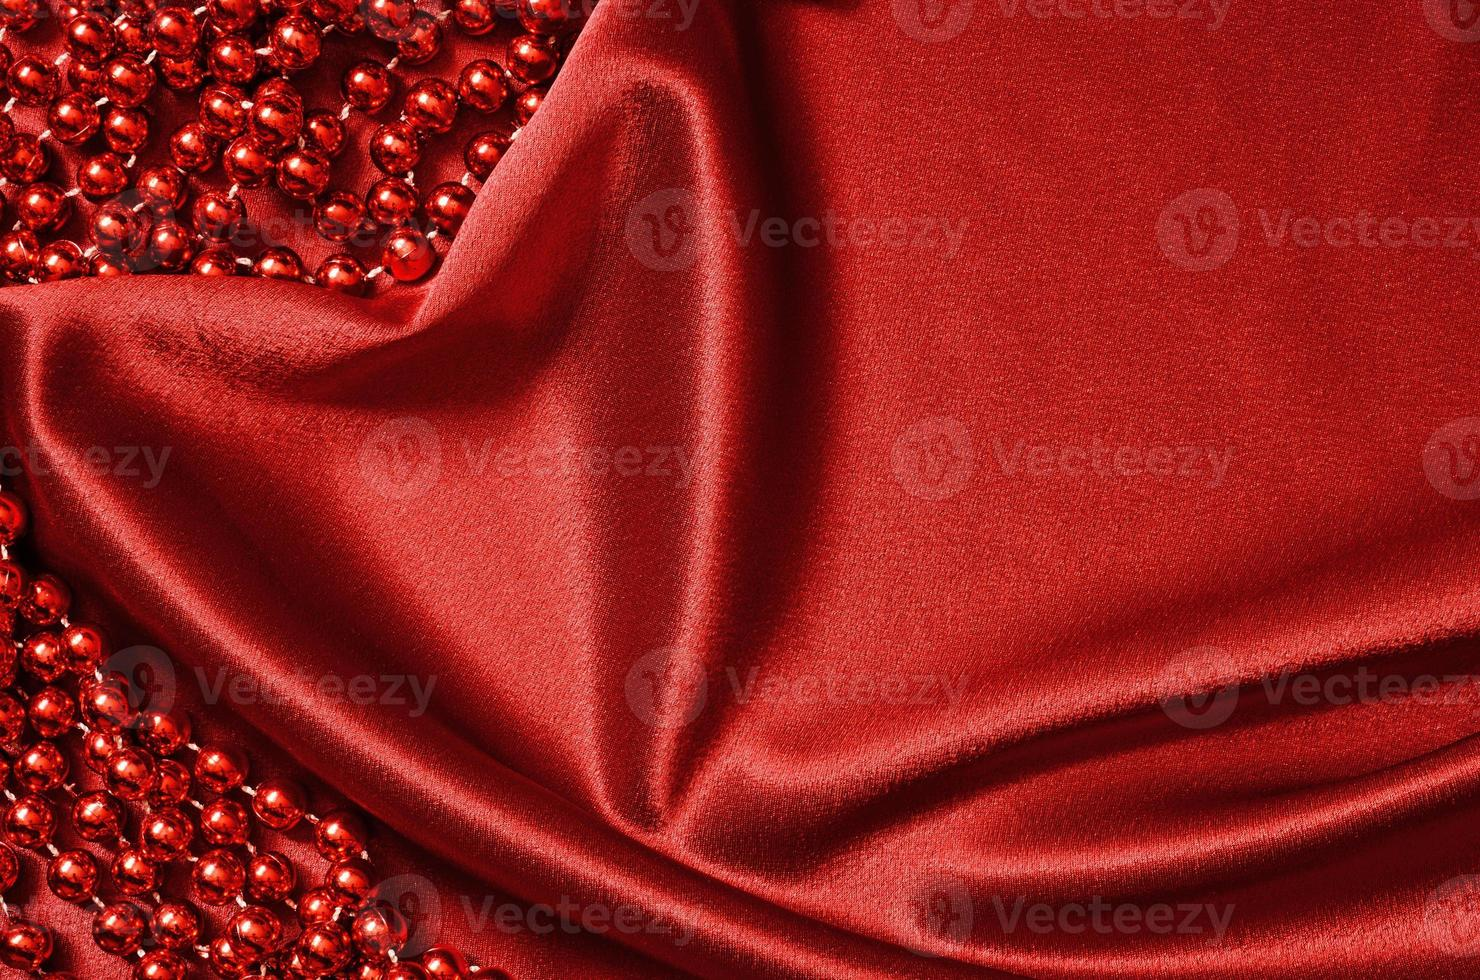 Red satin drapery and beads photo